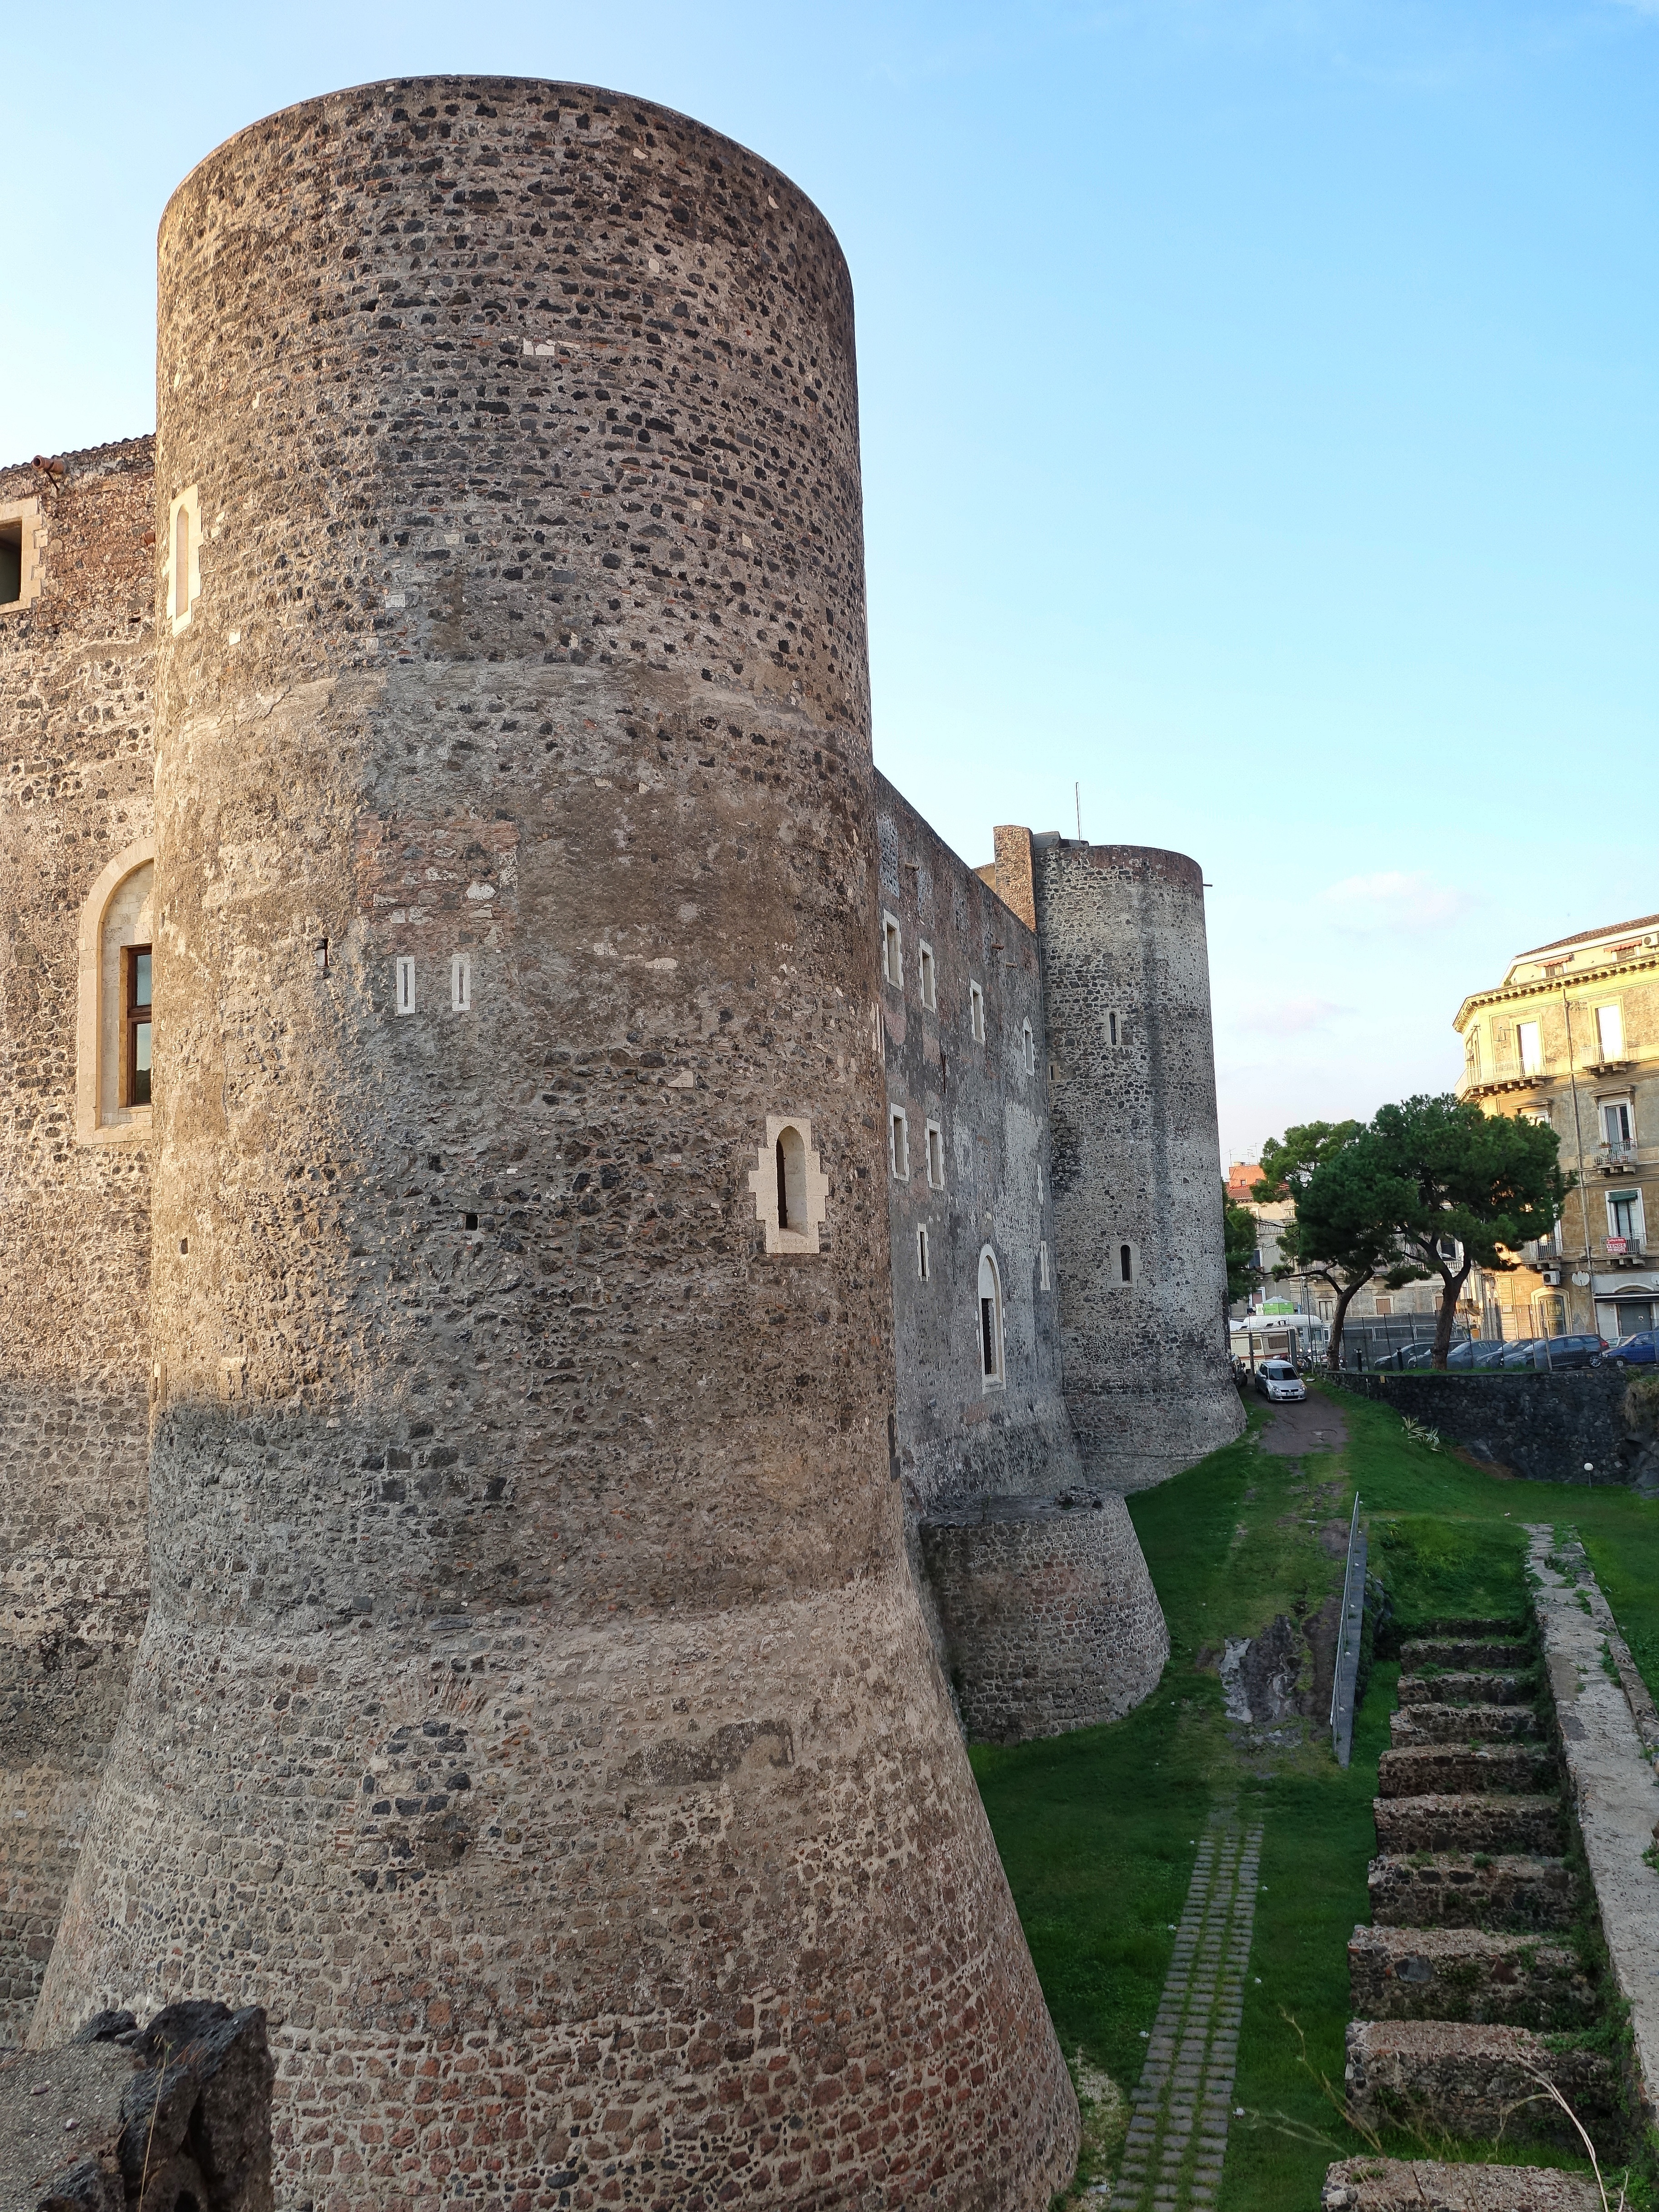 Local fort in Catania; well preserved